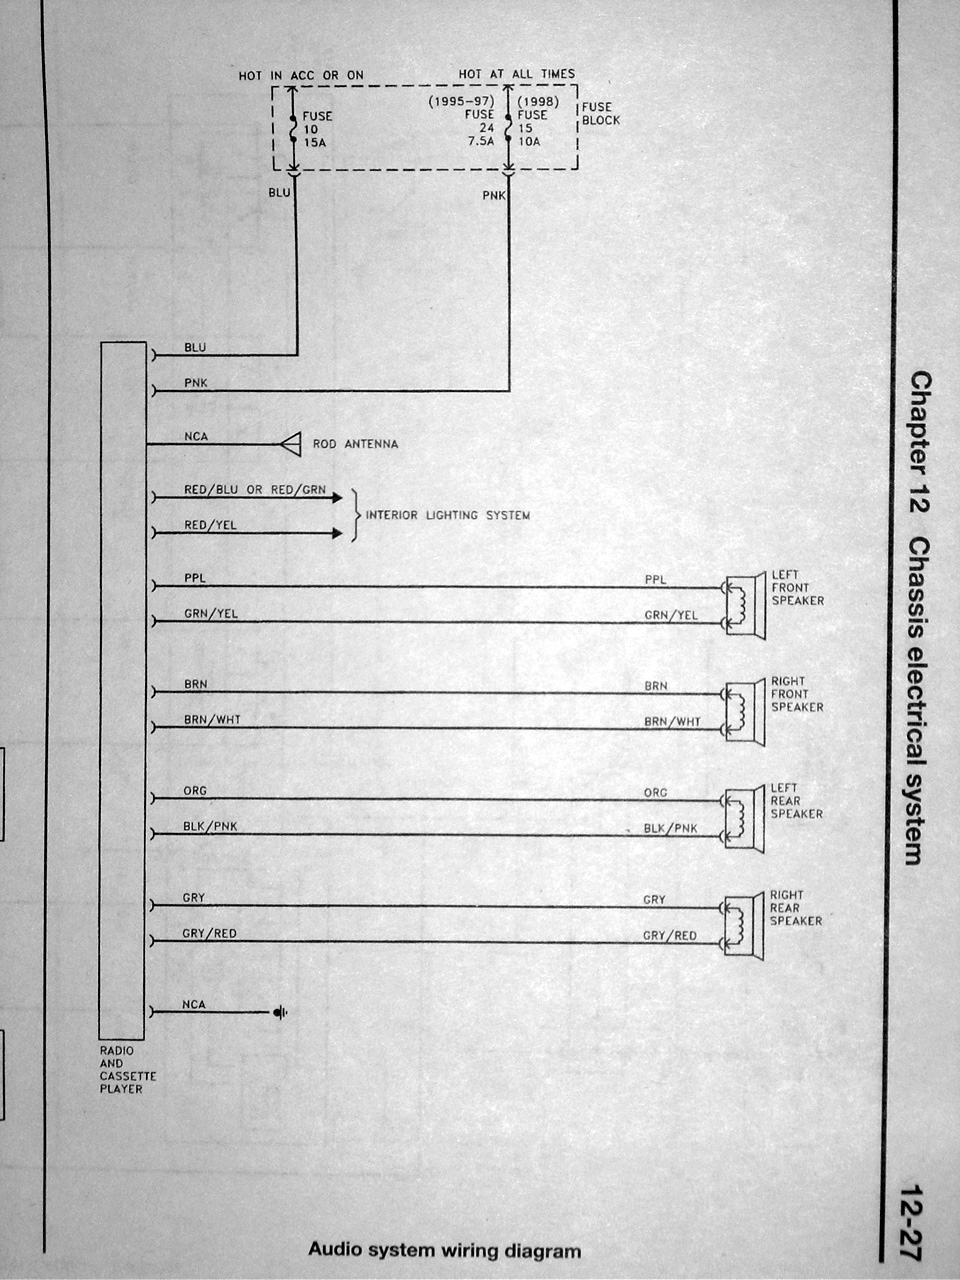 DSC01849 wiring diagram thread *useful info* nissan forum 2001 nissan altima stereo wiring diagram at readyjetset.co